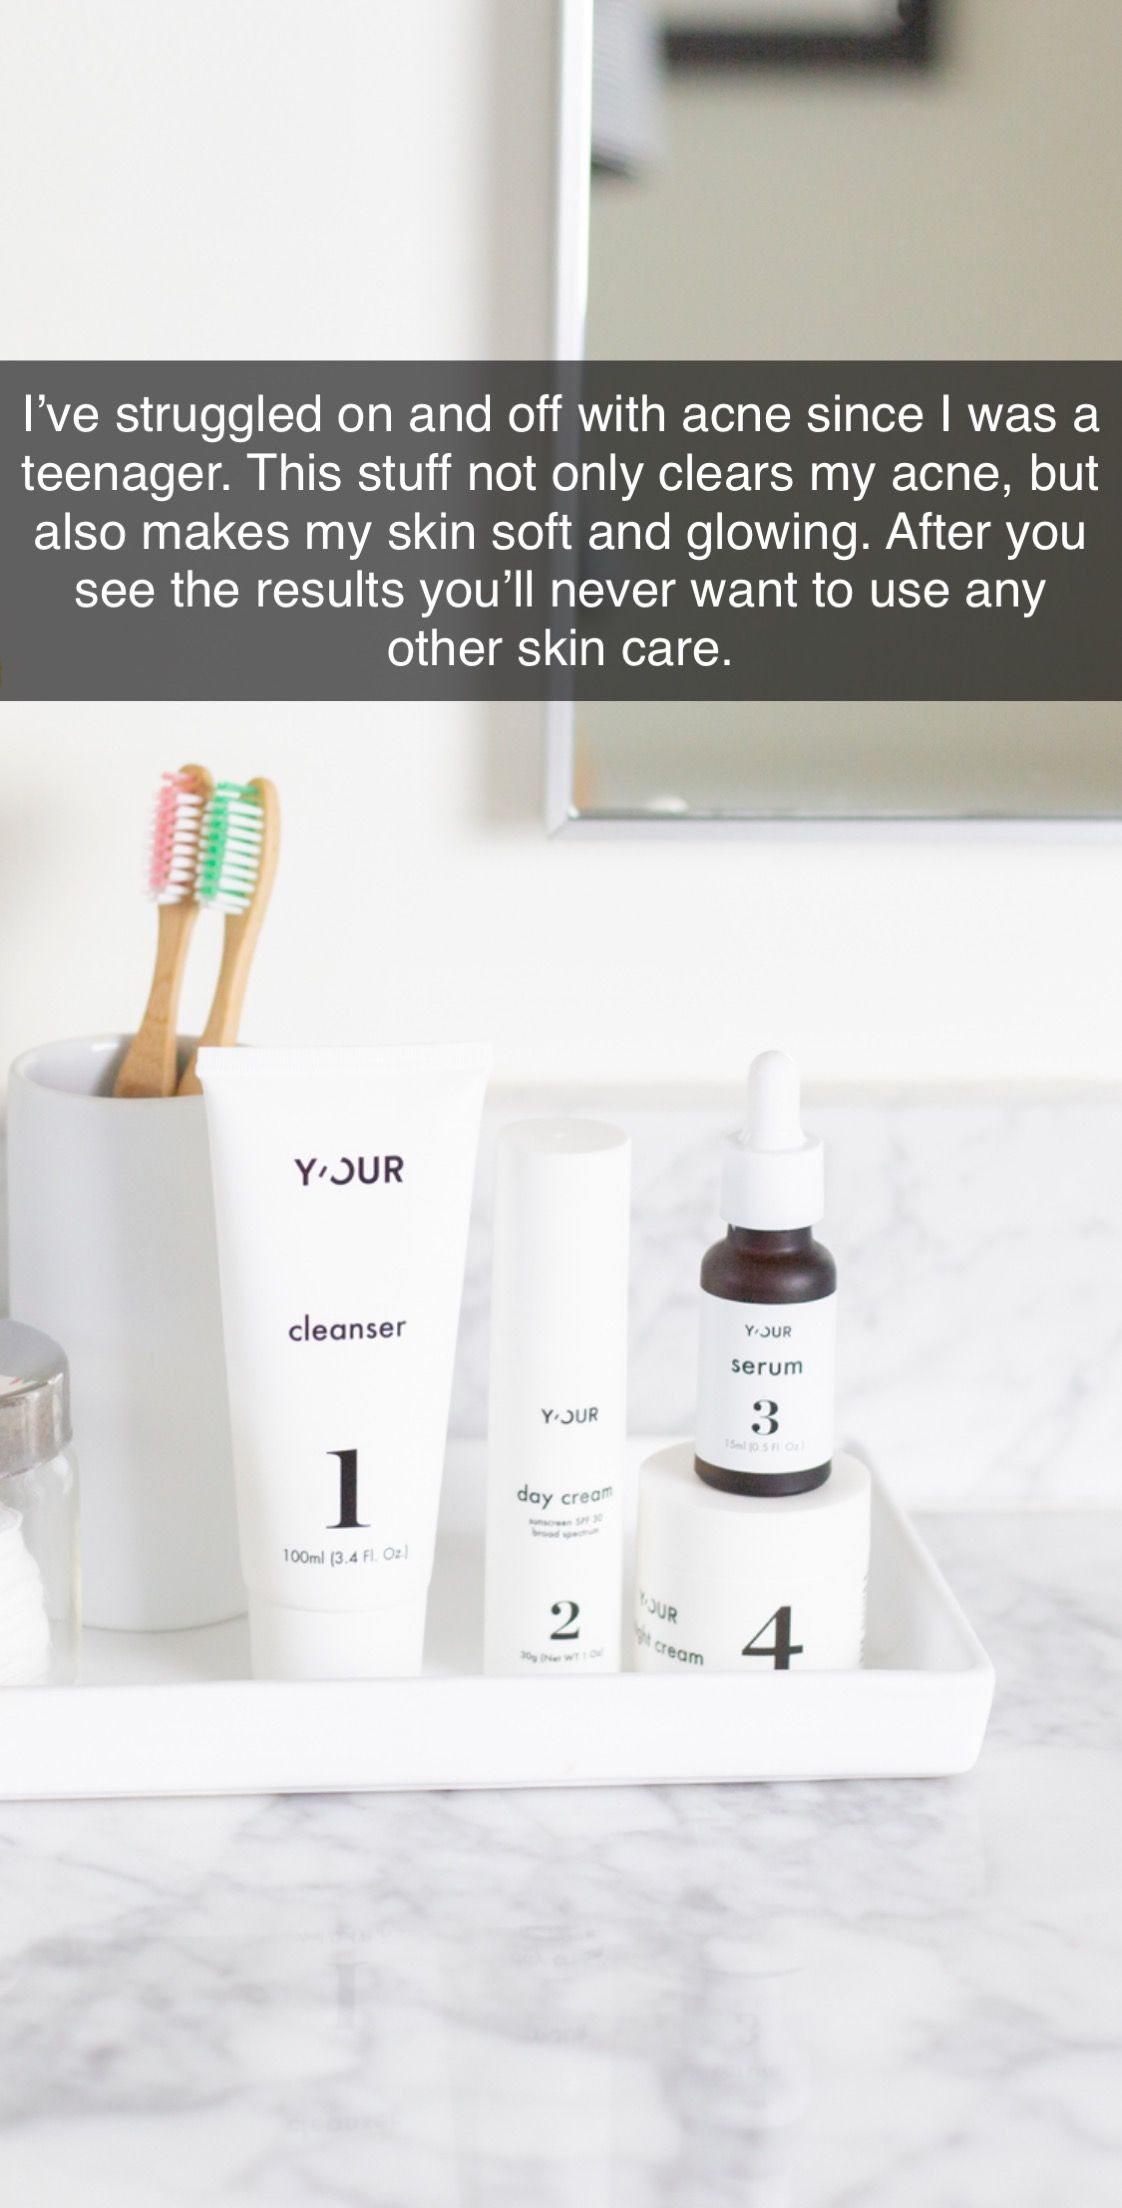 Personalized Skincare Products For Acne Clogged Pores And Problematic Skin Makeup Skin Care Clear Skin Tips Skin Care Solutions